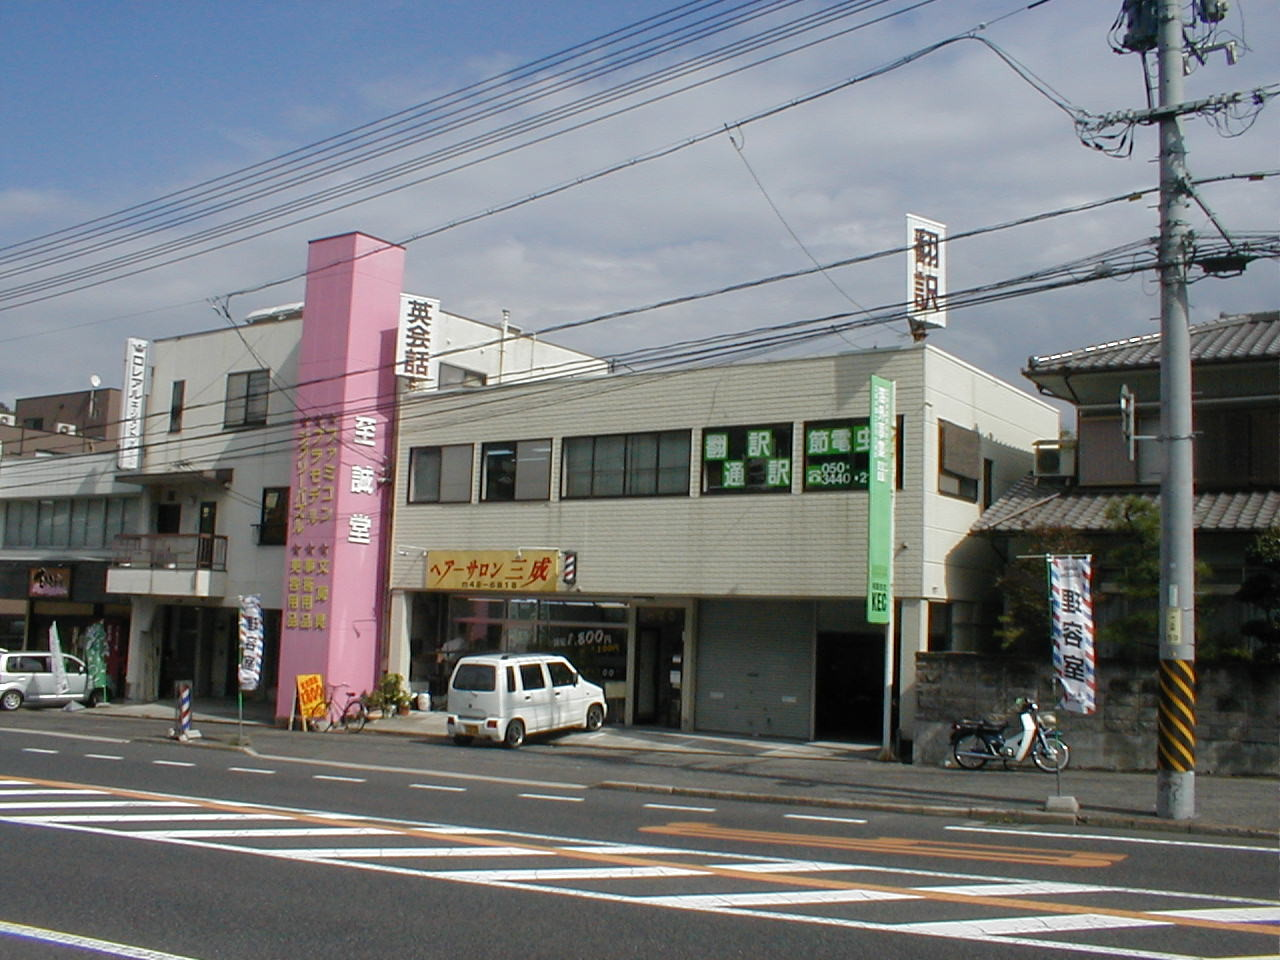 1984年 新社屋建築 貸店舗・事務所開業 New company office building completed as well as for rental shop & office in 1984